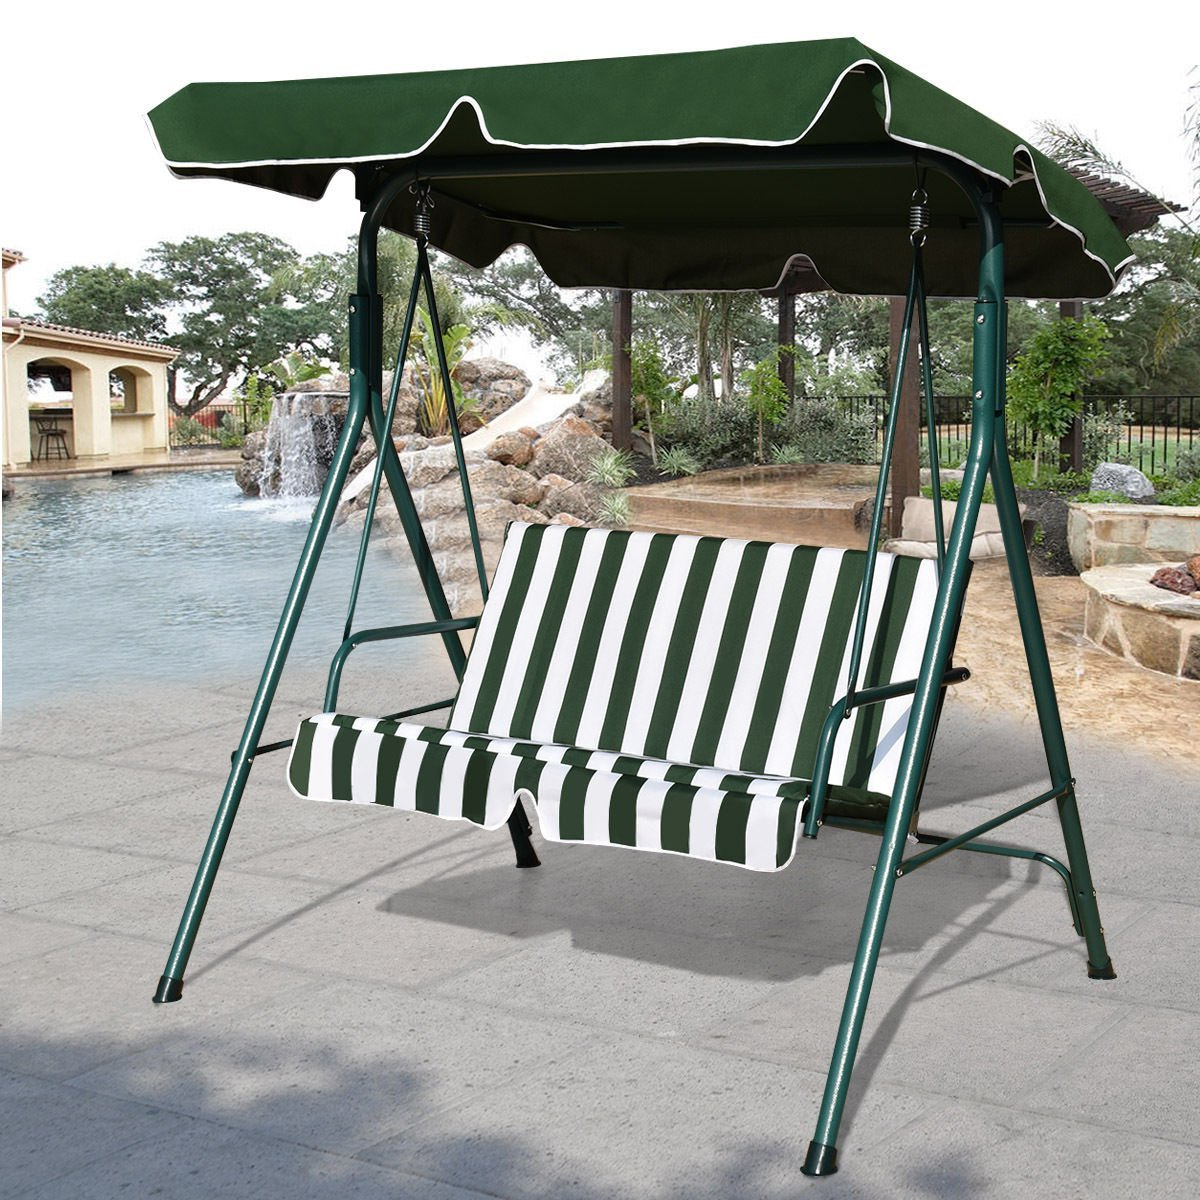 Popular Cheap Canopy For Garden Swing Seat, Find Canopy For Garden For 2 Person Gray Steel Outdoor Swings (View 10 of 30)